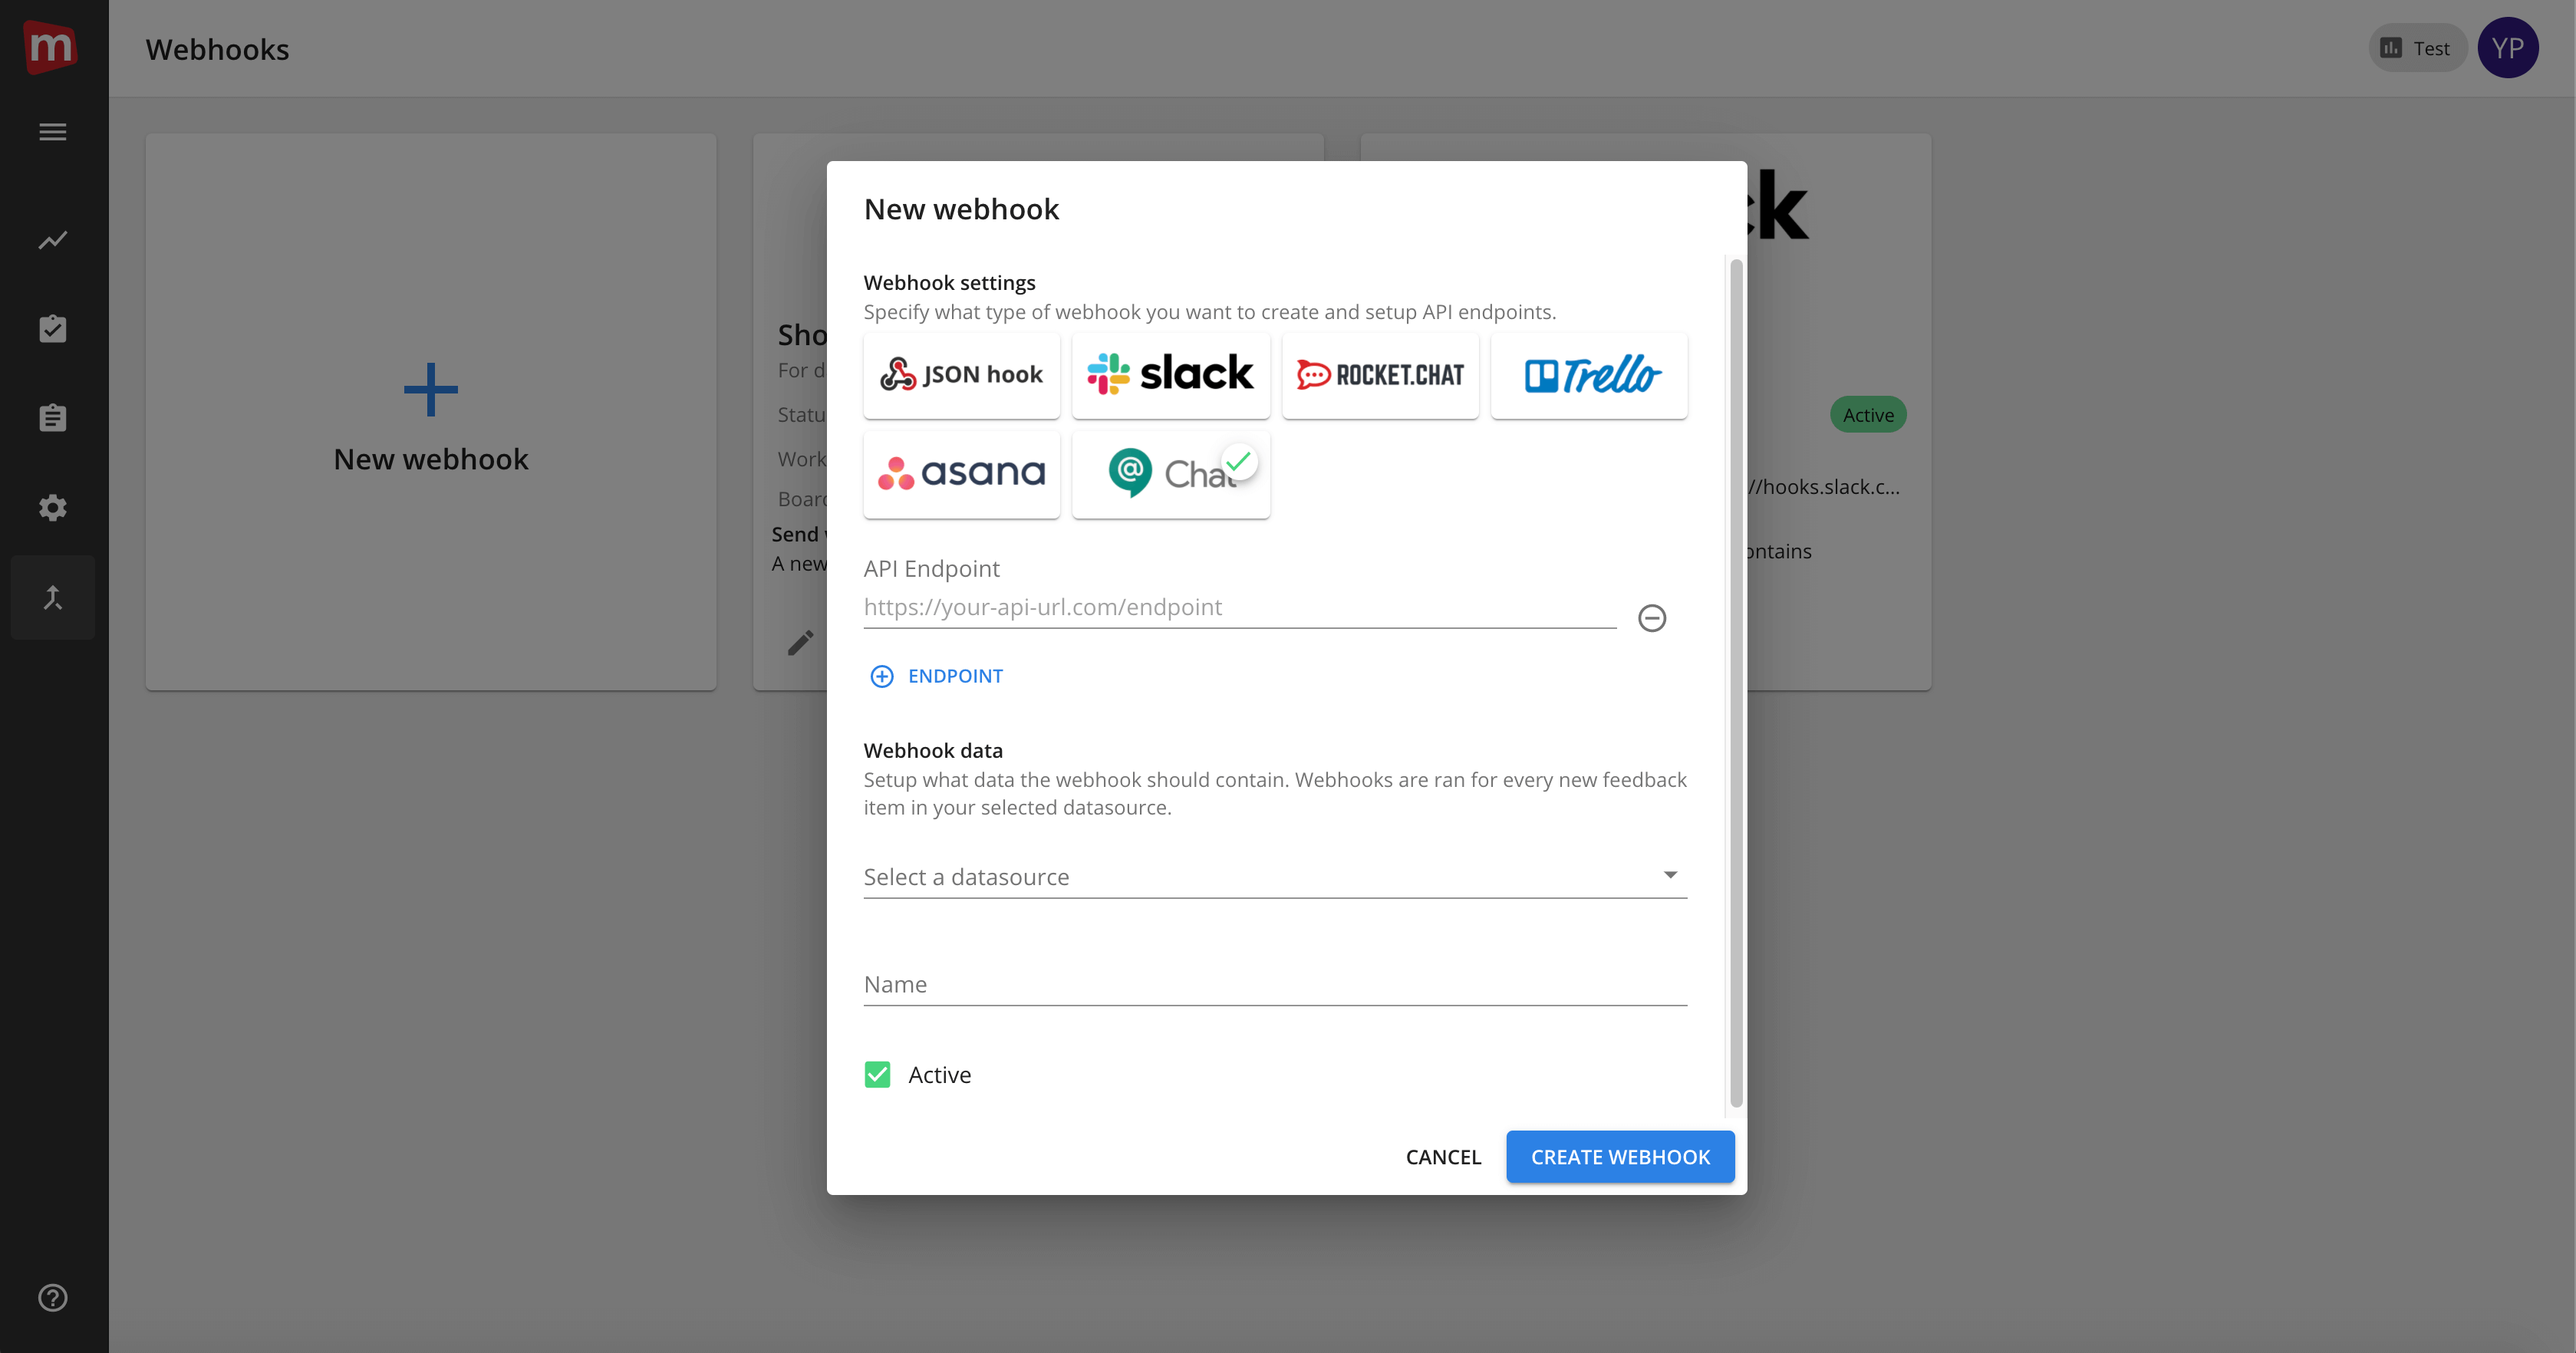 Mopinion: Mopinion now integrates with messaging platform Google Chat - Webhooks settings page